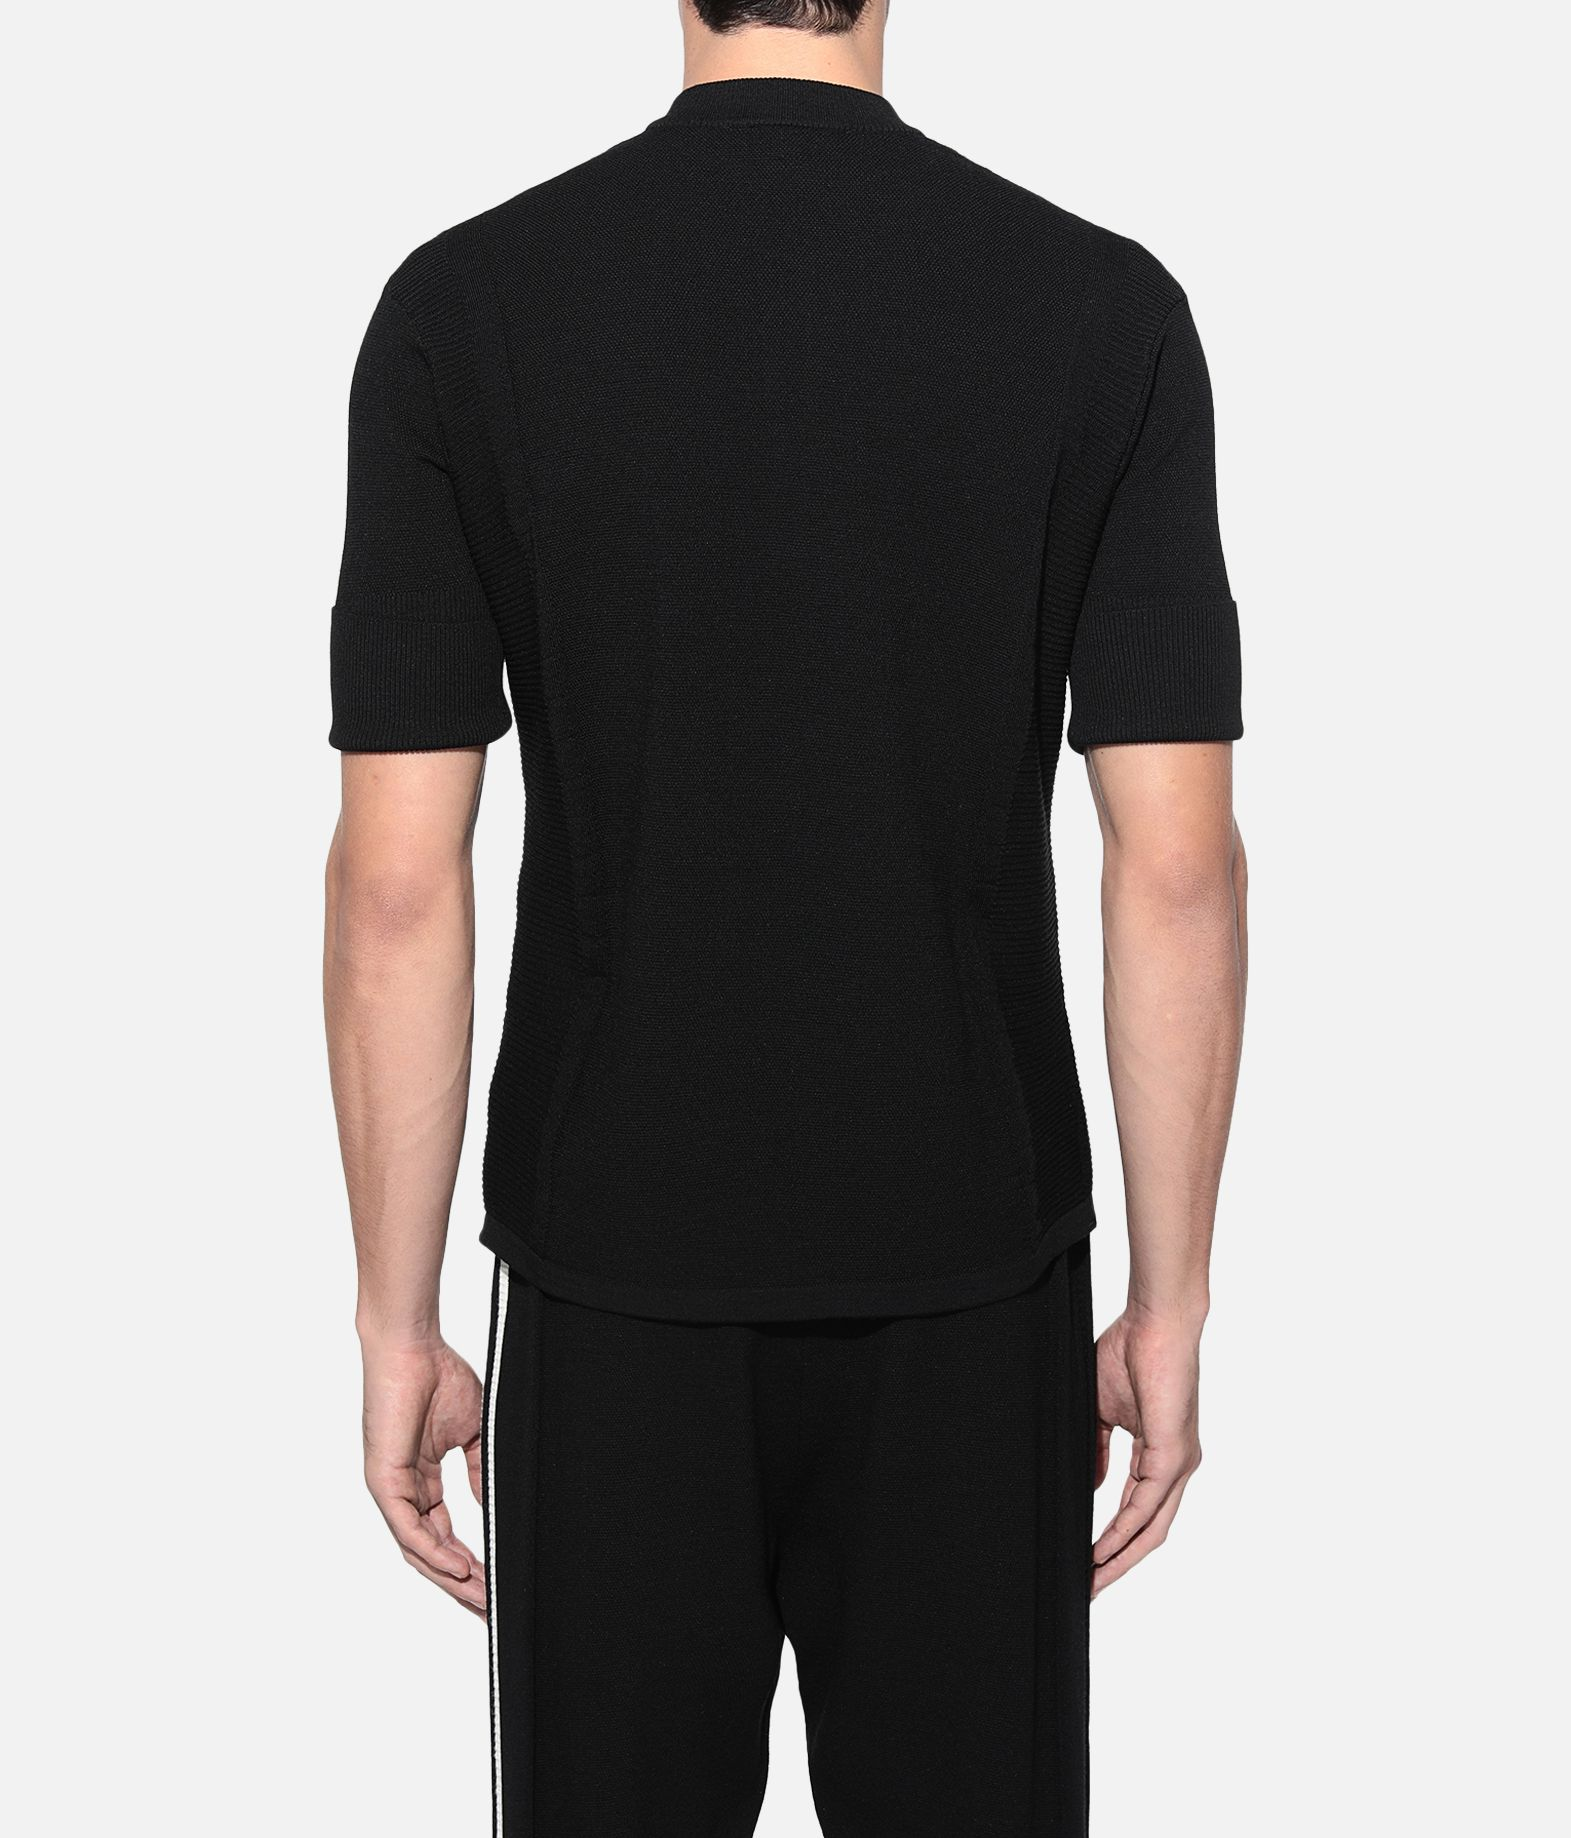 Y-3 Y-3 Knit Tee Short sleeve t-shirt Man d